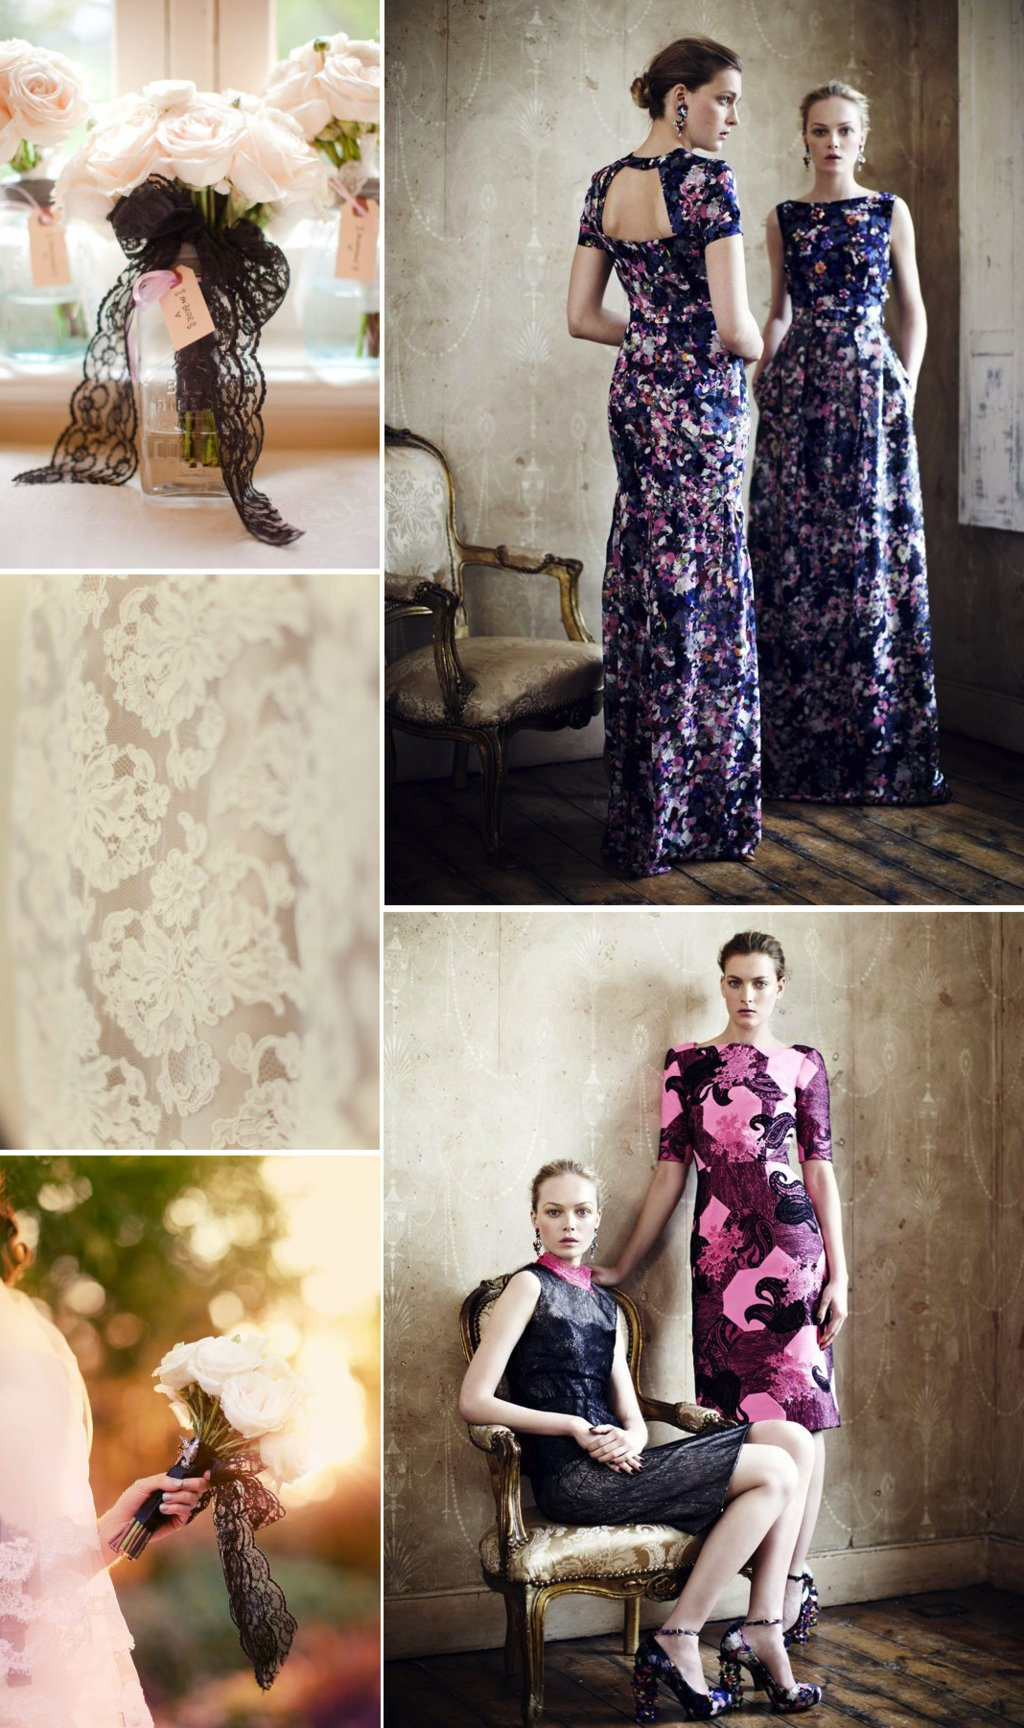 Floral-and-lace-wedding-inspiration-romantic-outdoor-weddings-2.full